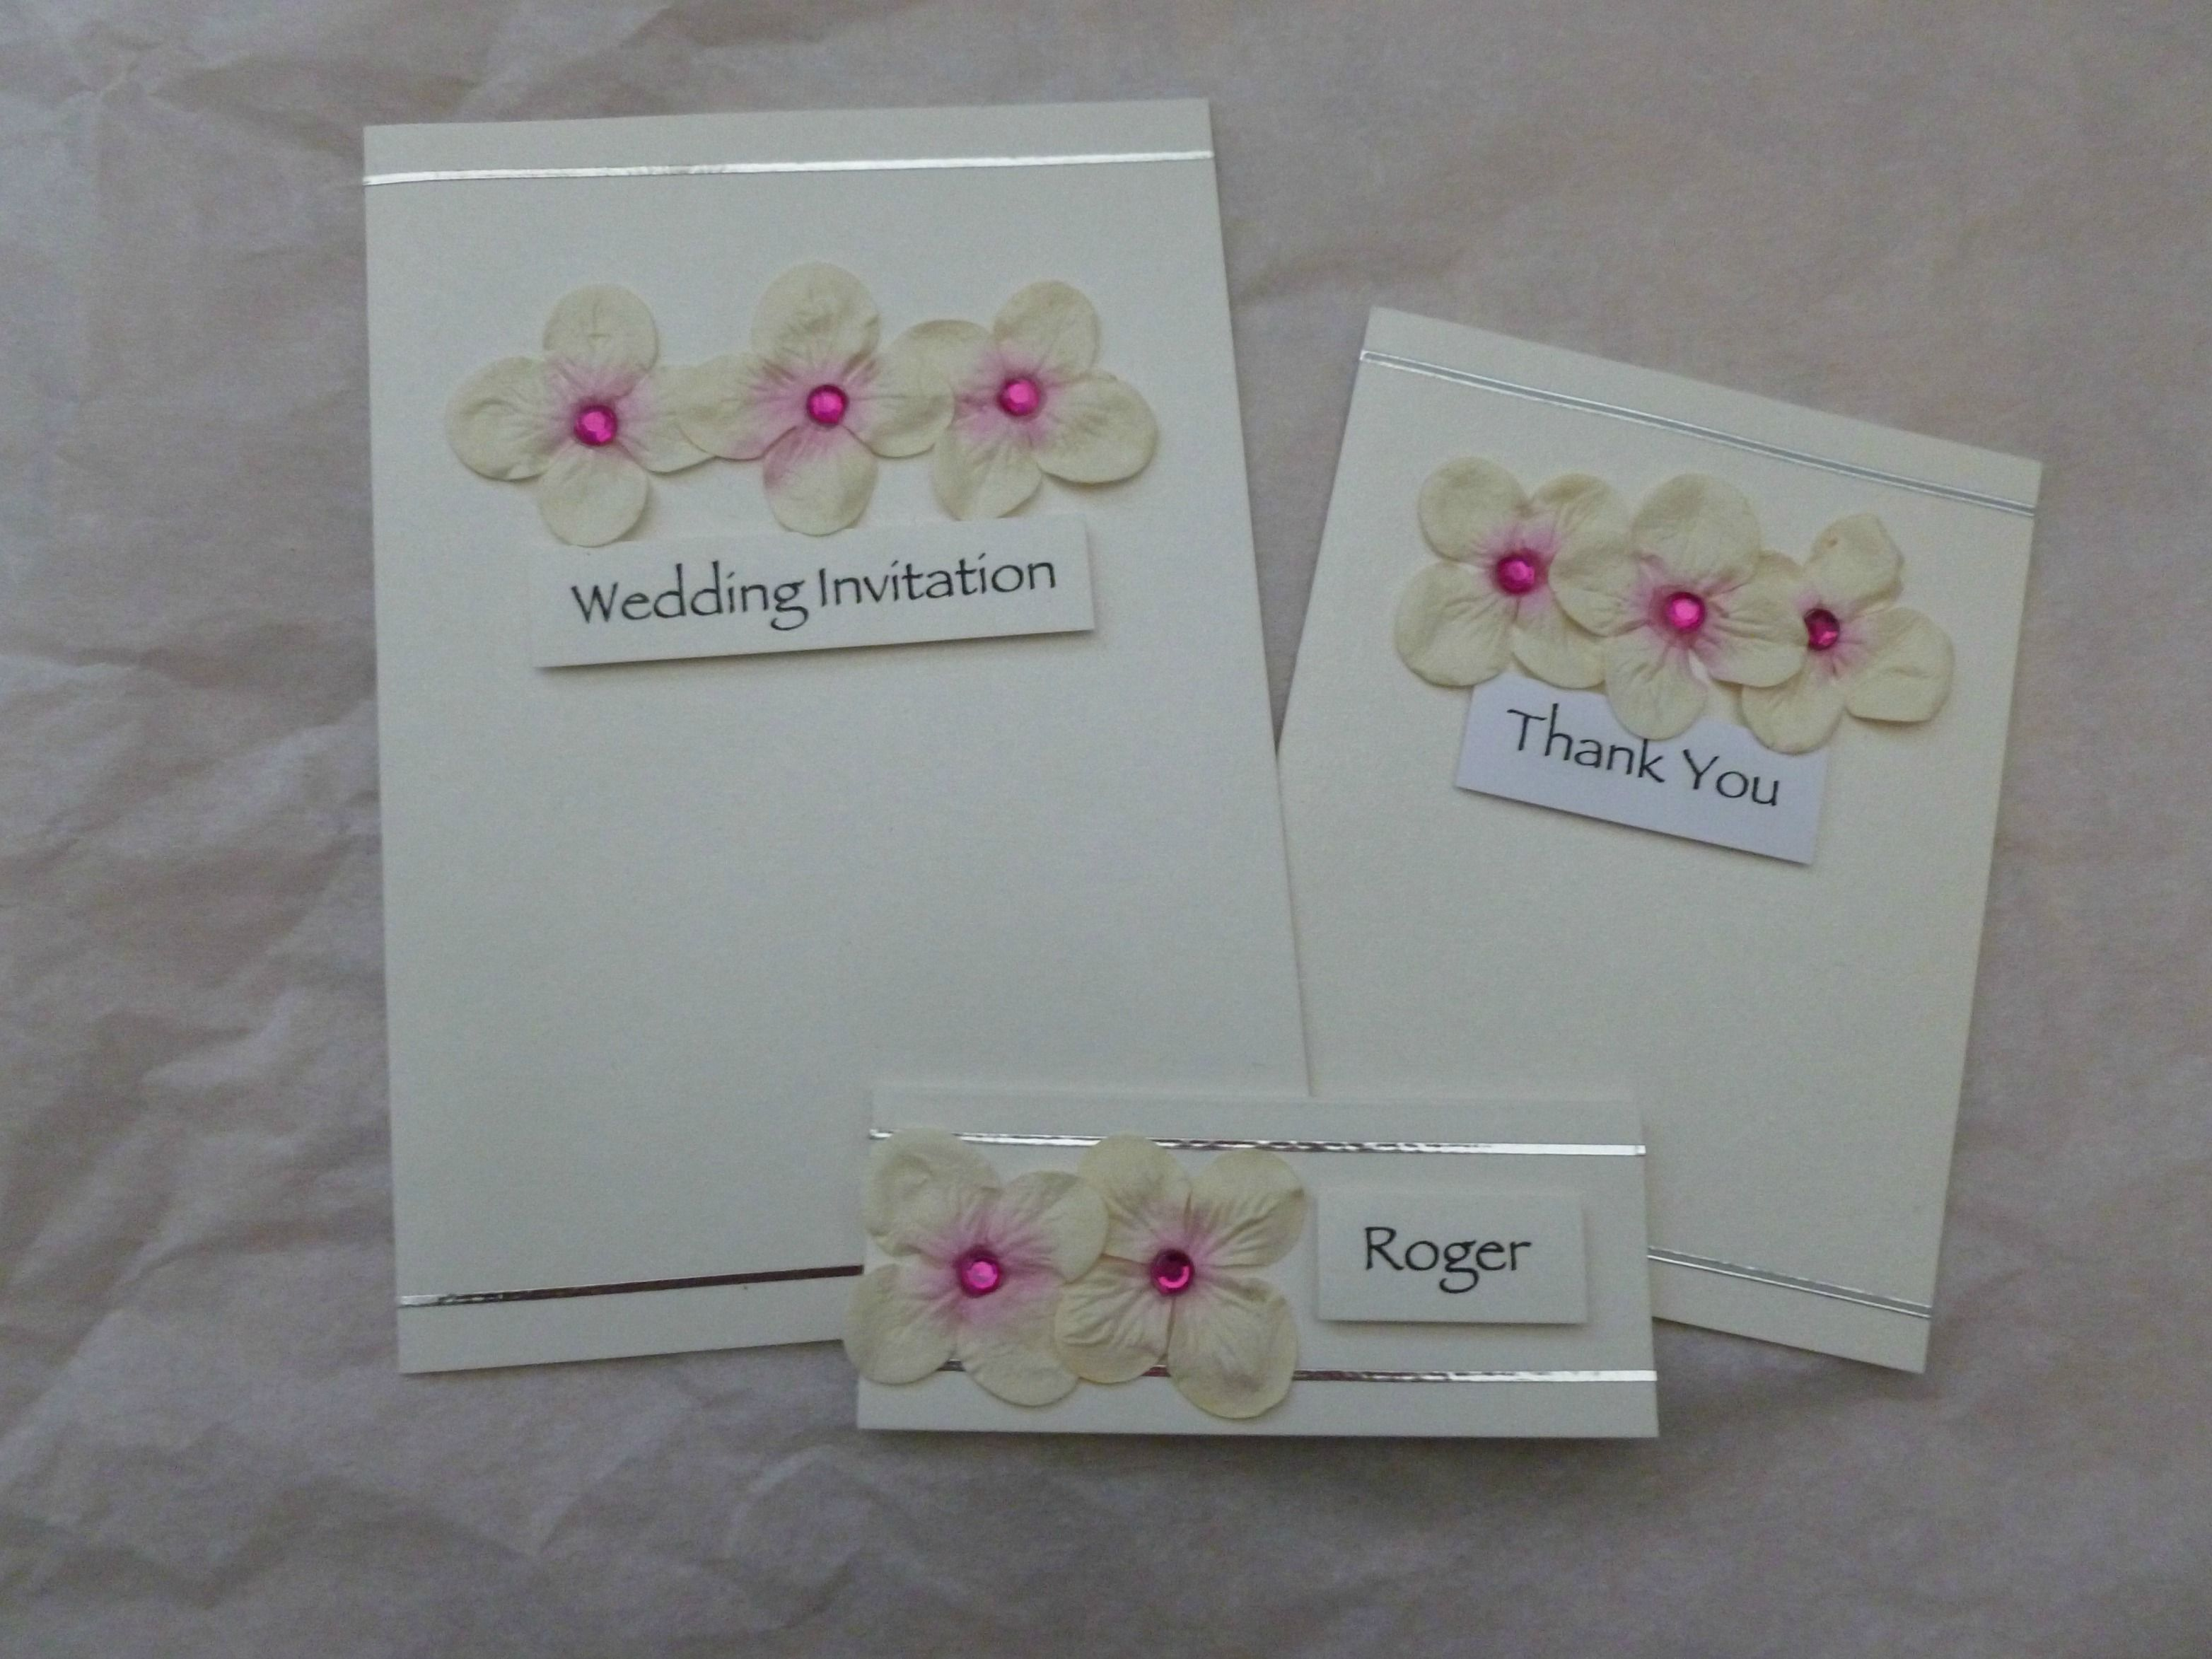 wwwcardsandgiftsbylouisecouk EnvelopeWedding Stationery wwwcardsandgiftsbylouisecouk Wedding